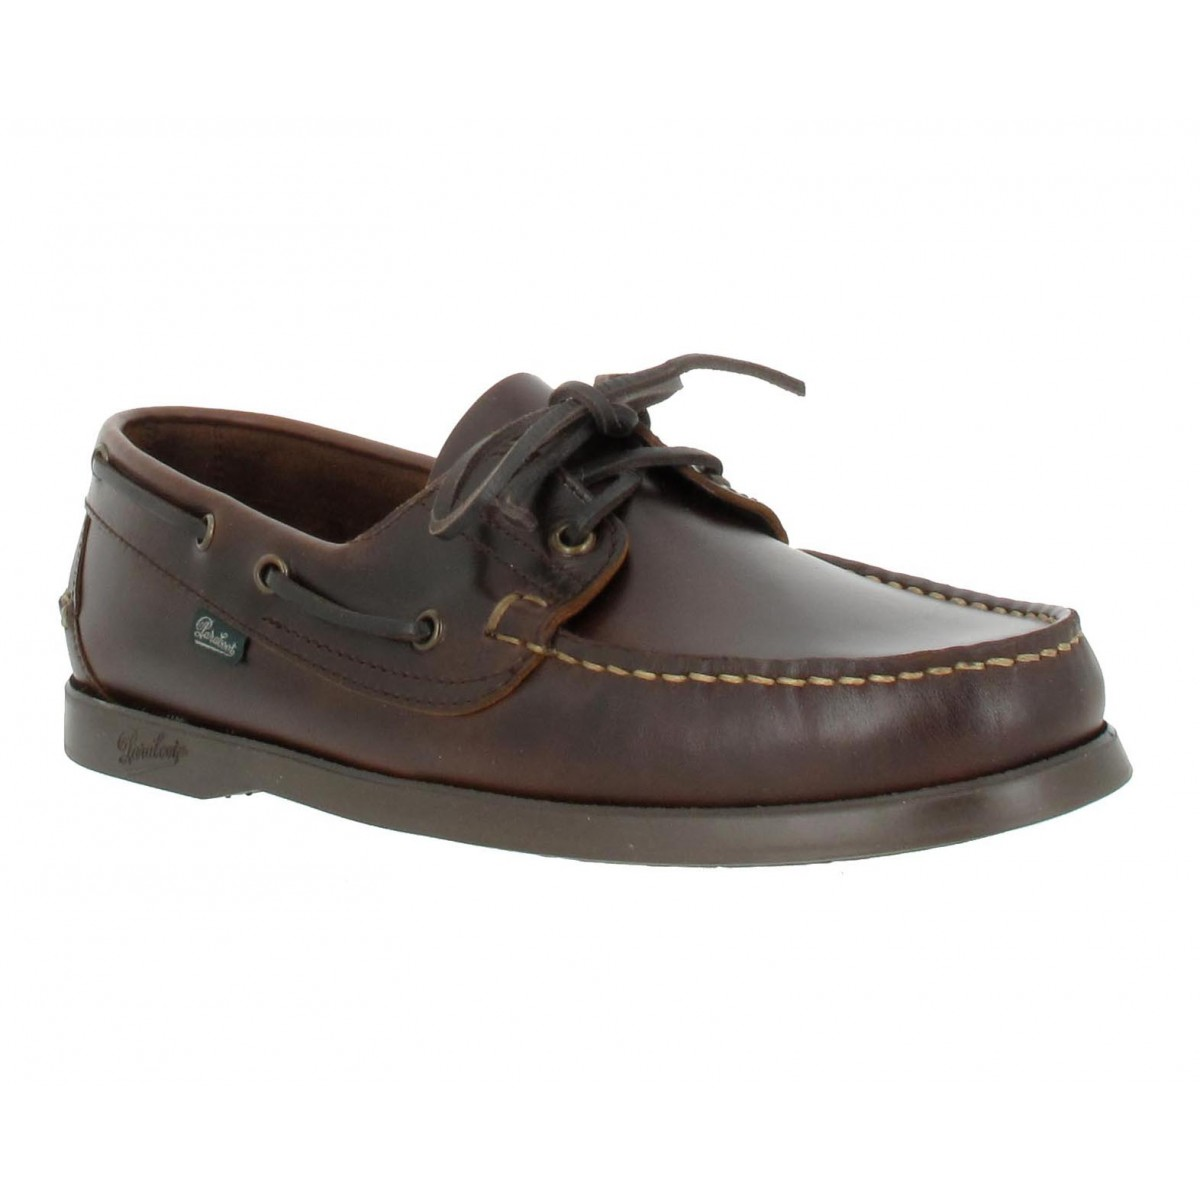 Chaussures bateaux PARABOOT Barth cuir Homme Marron America